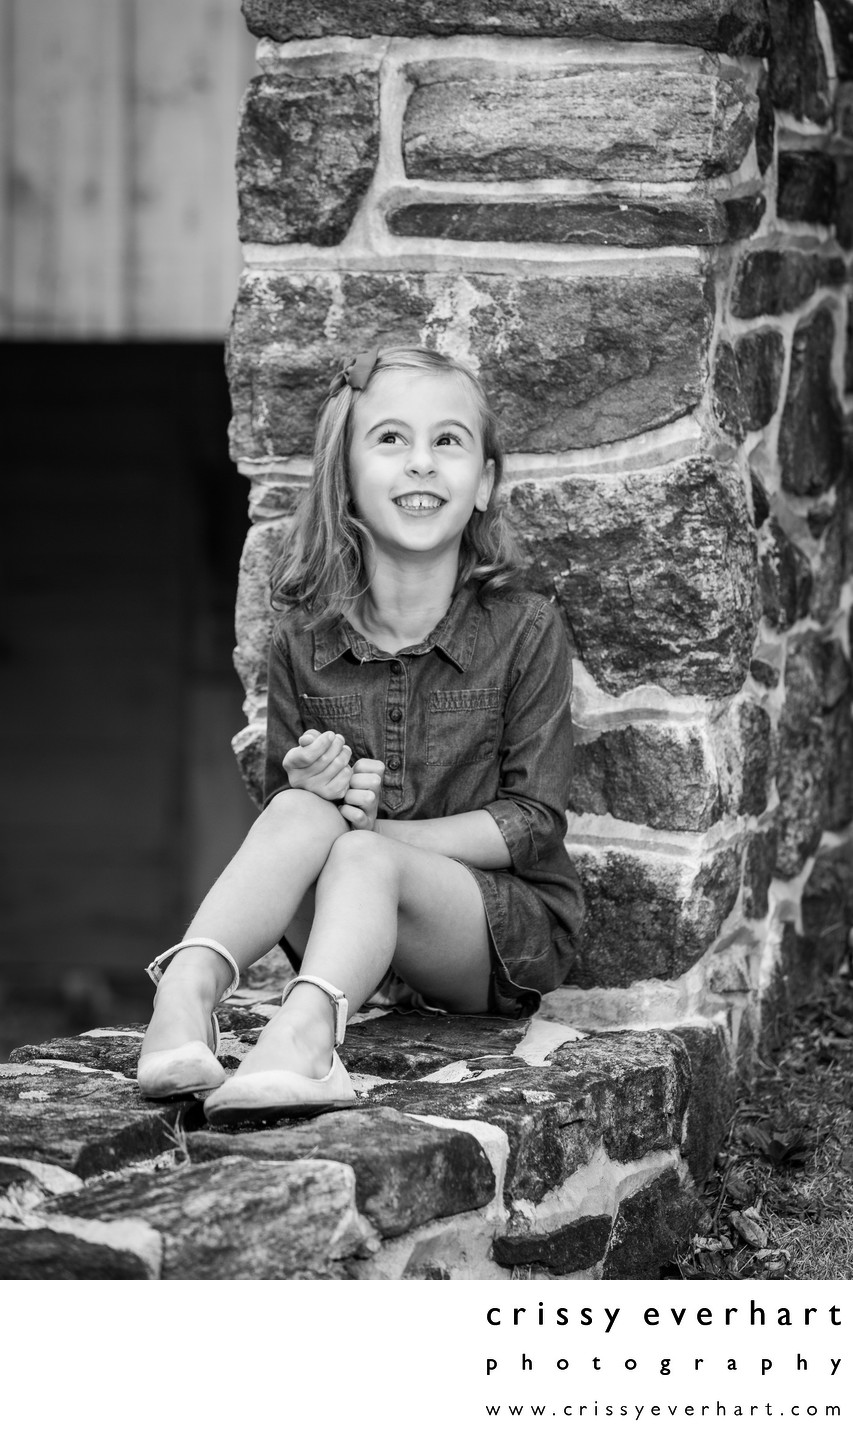 Light Hearted Children's Portraits - Historic Studio